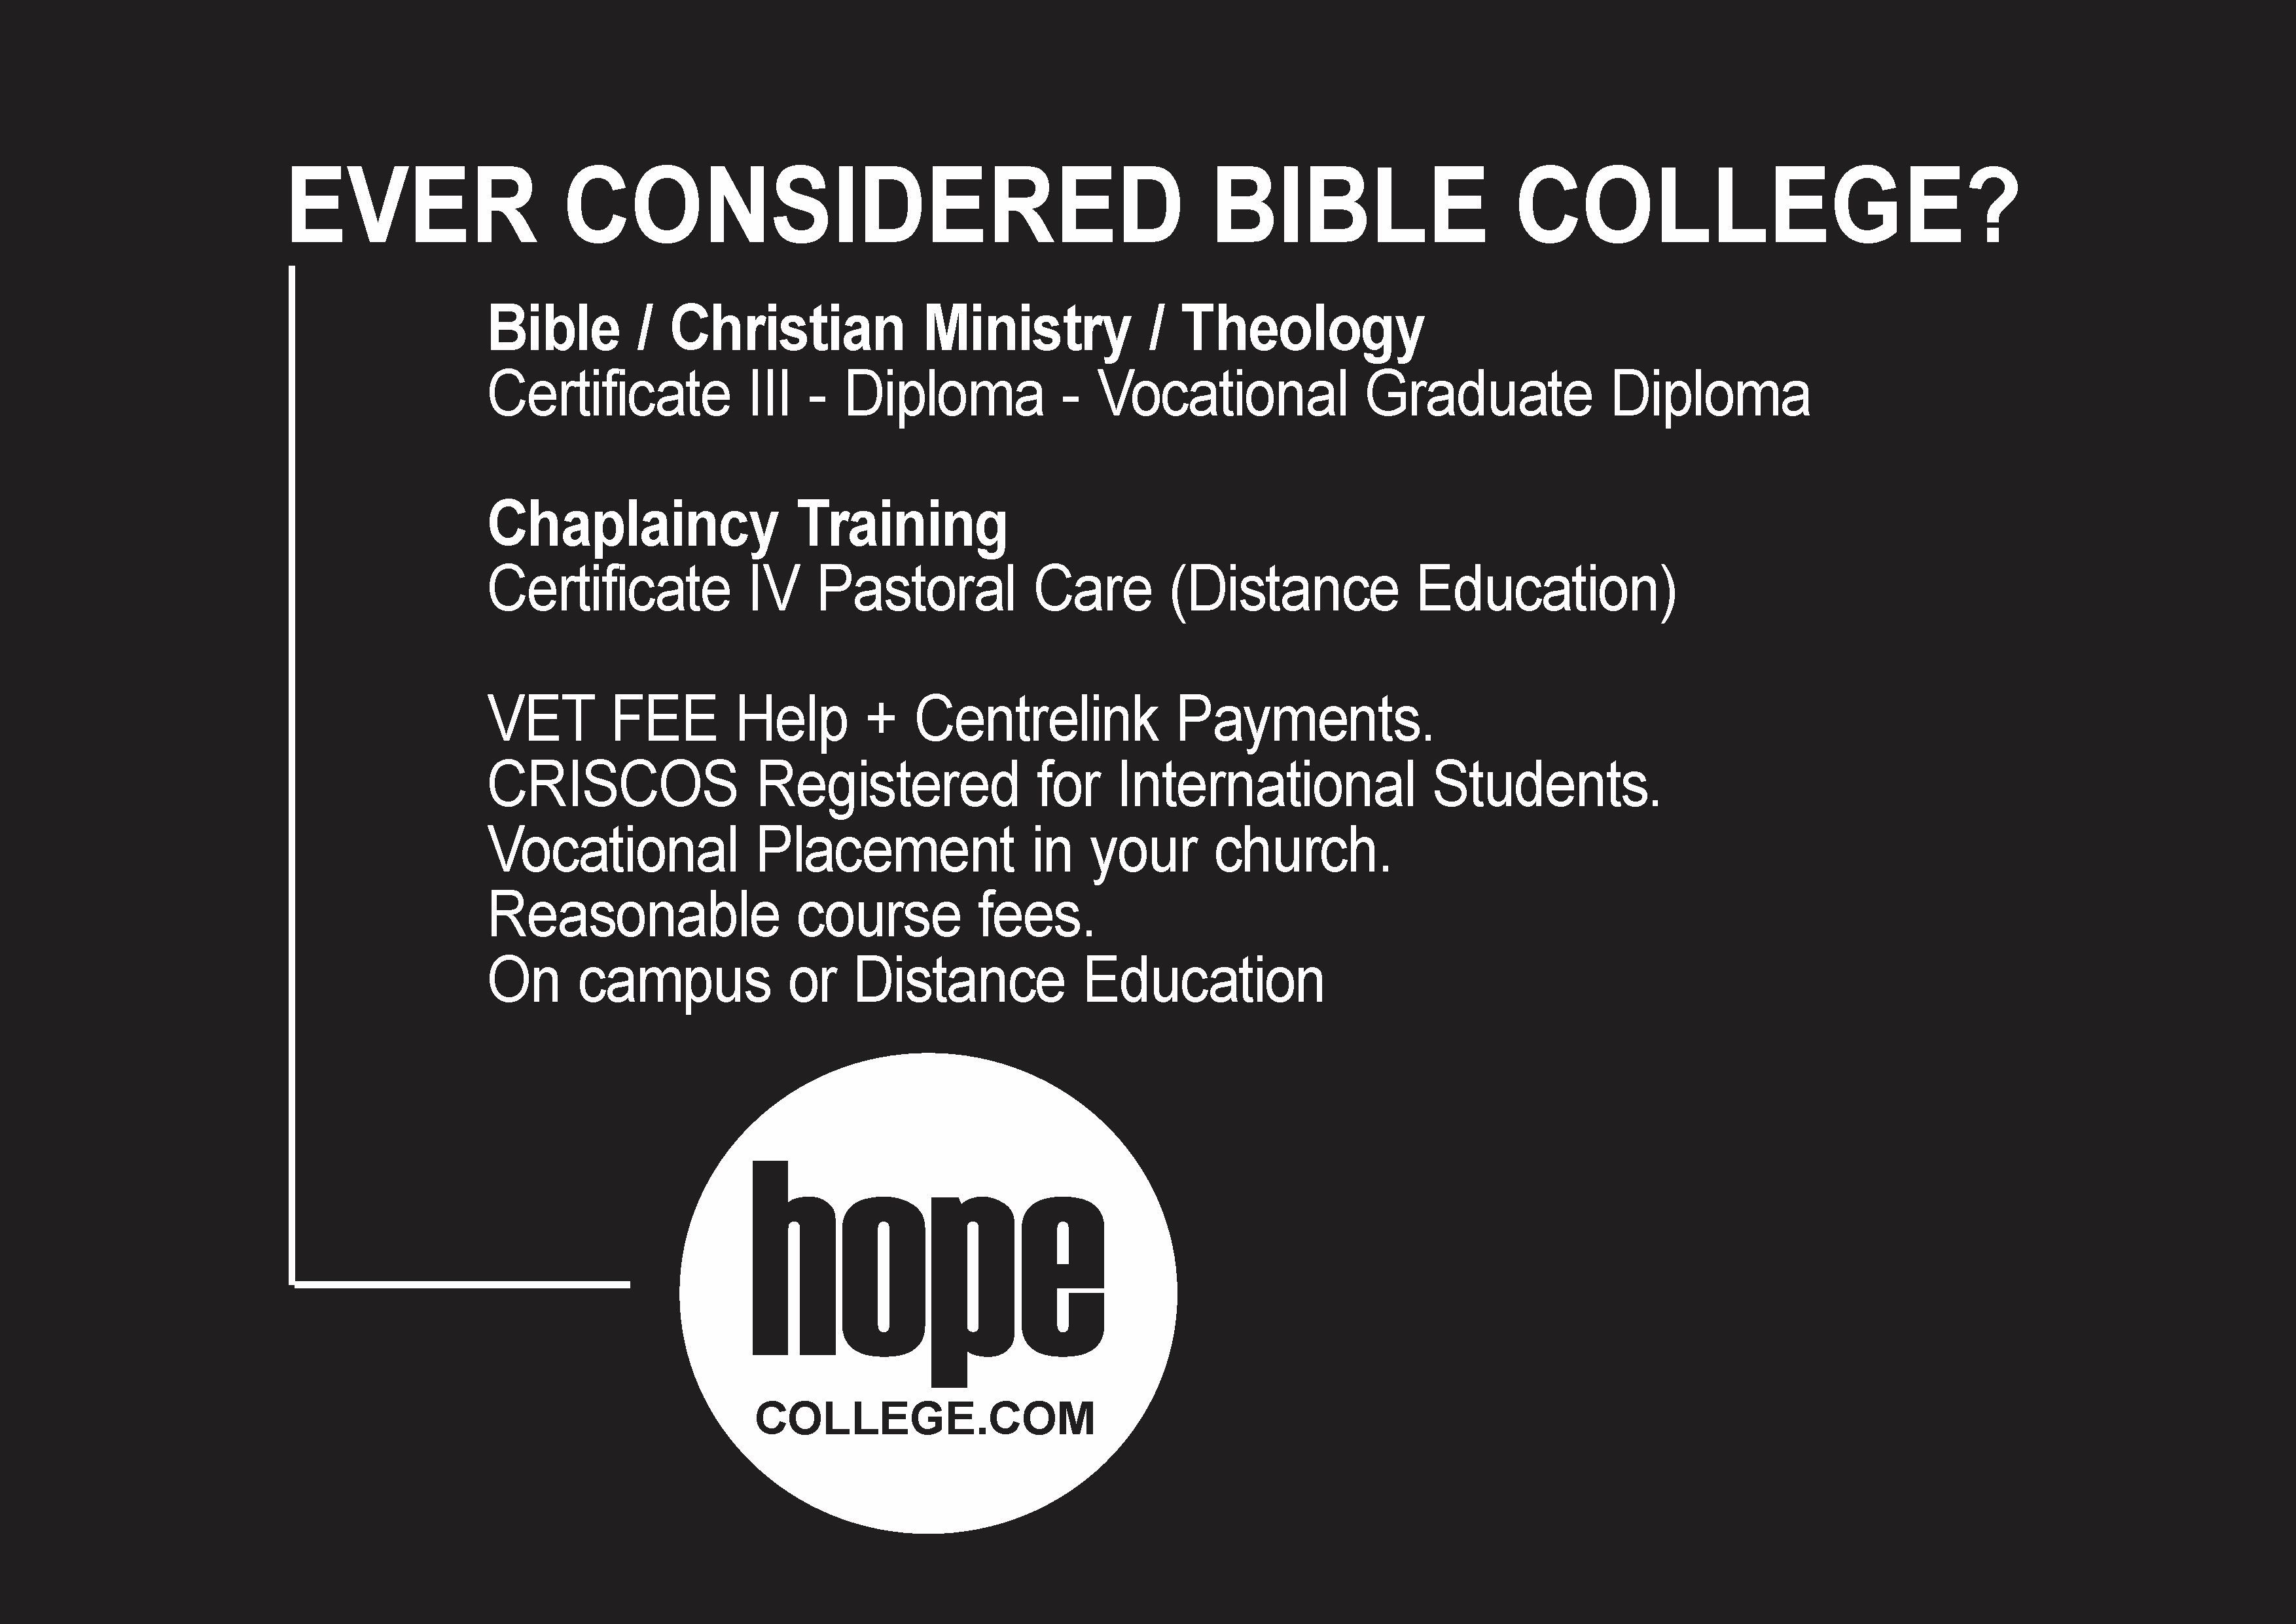 Considered College Calling Career Bible Ever More Less Andever Considered Bible College More Calling And L Bible College Bible International Students